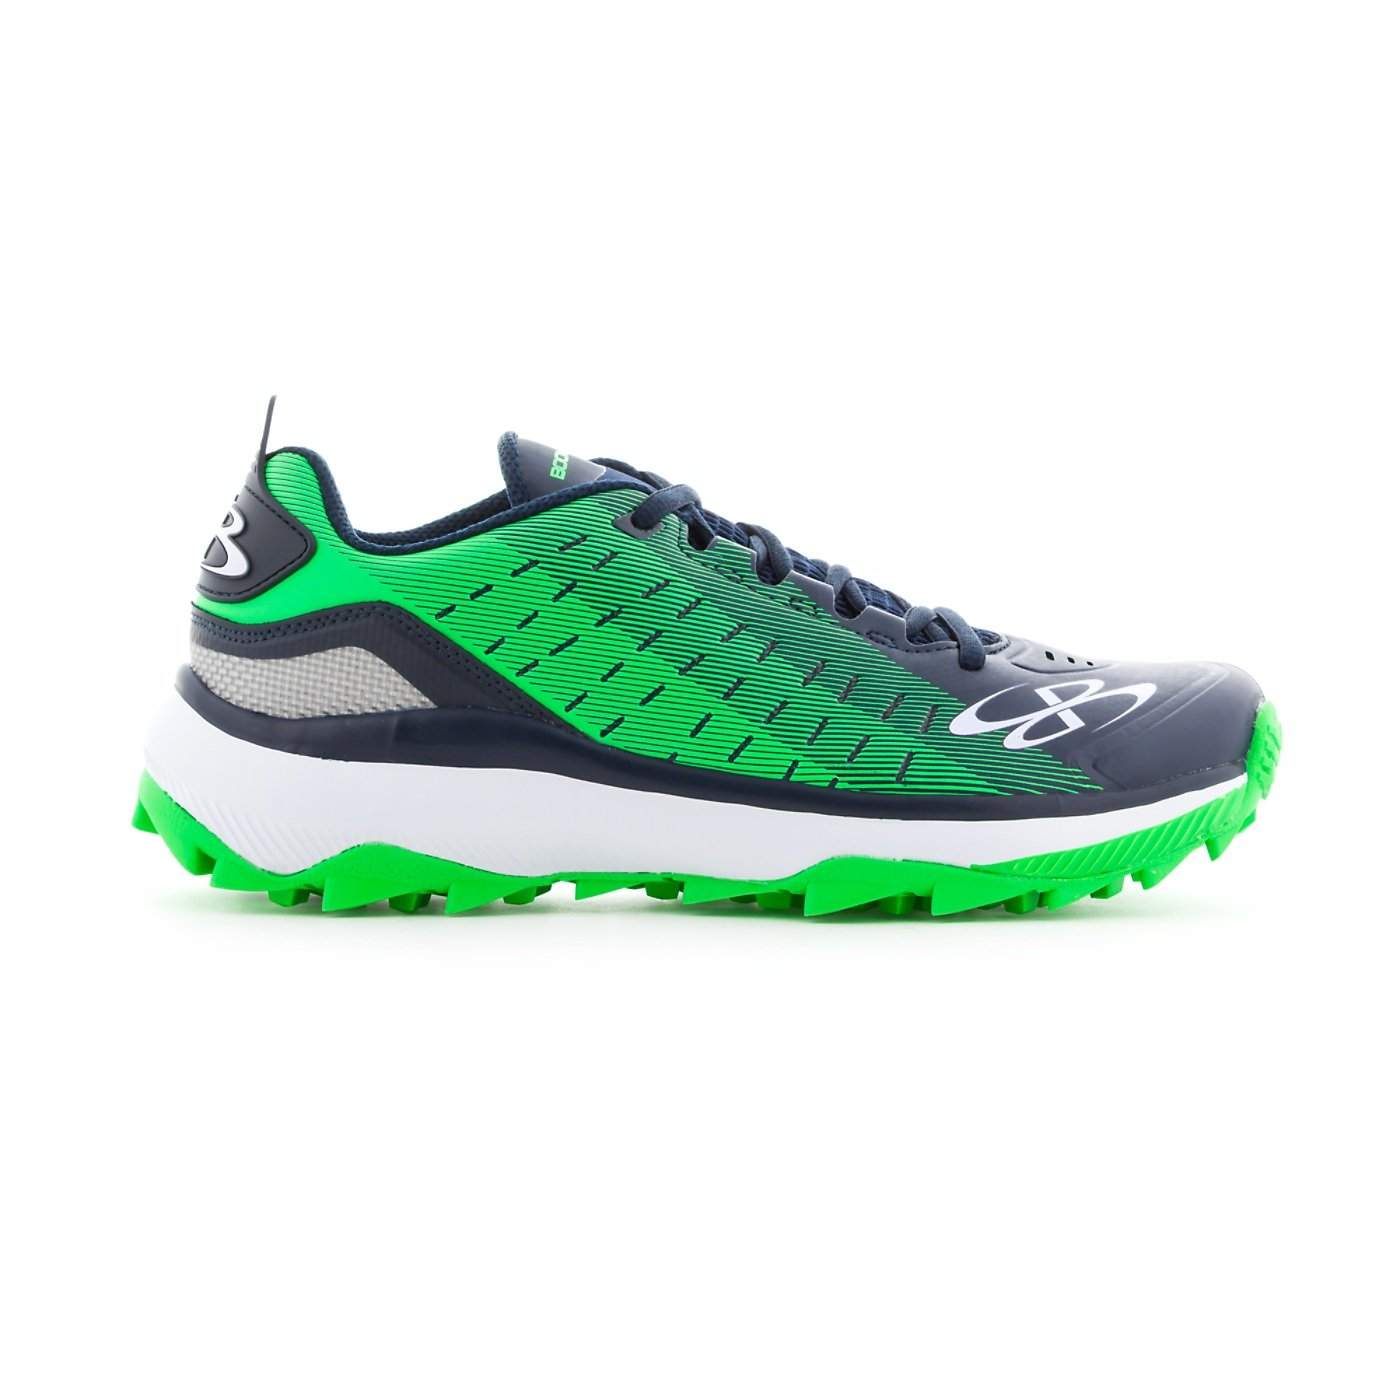 Boombah Men's Catalyst Turf Navy/Lime Green - Size 7.5 by Boombah